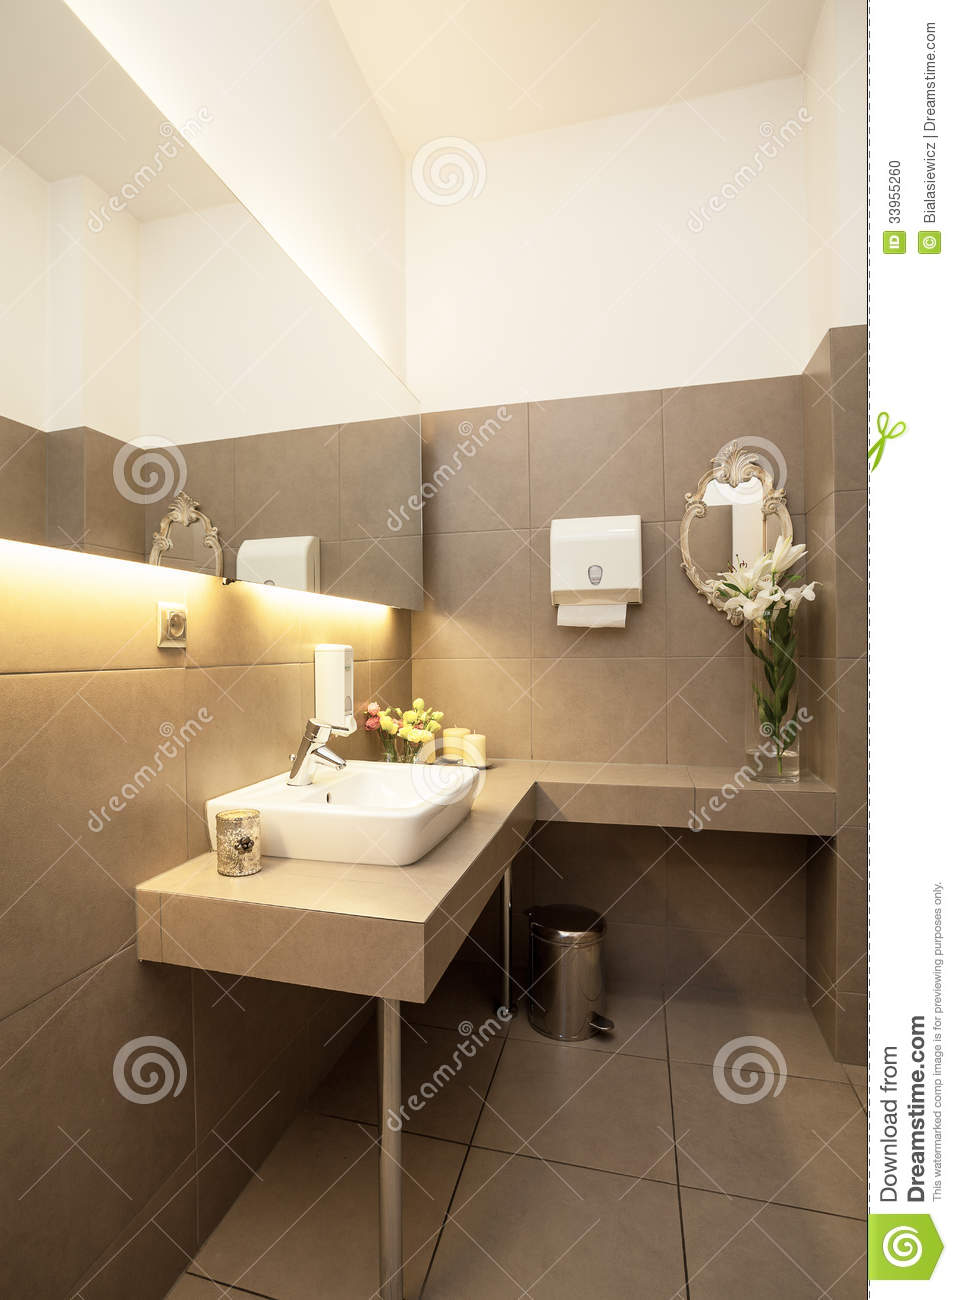 Luxury toilet interior stock photo Image of faucet